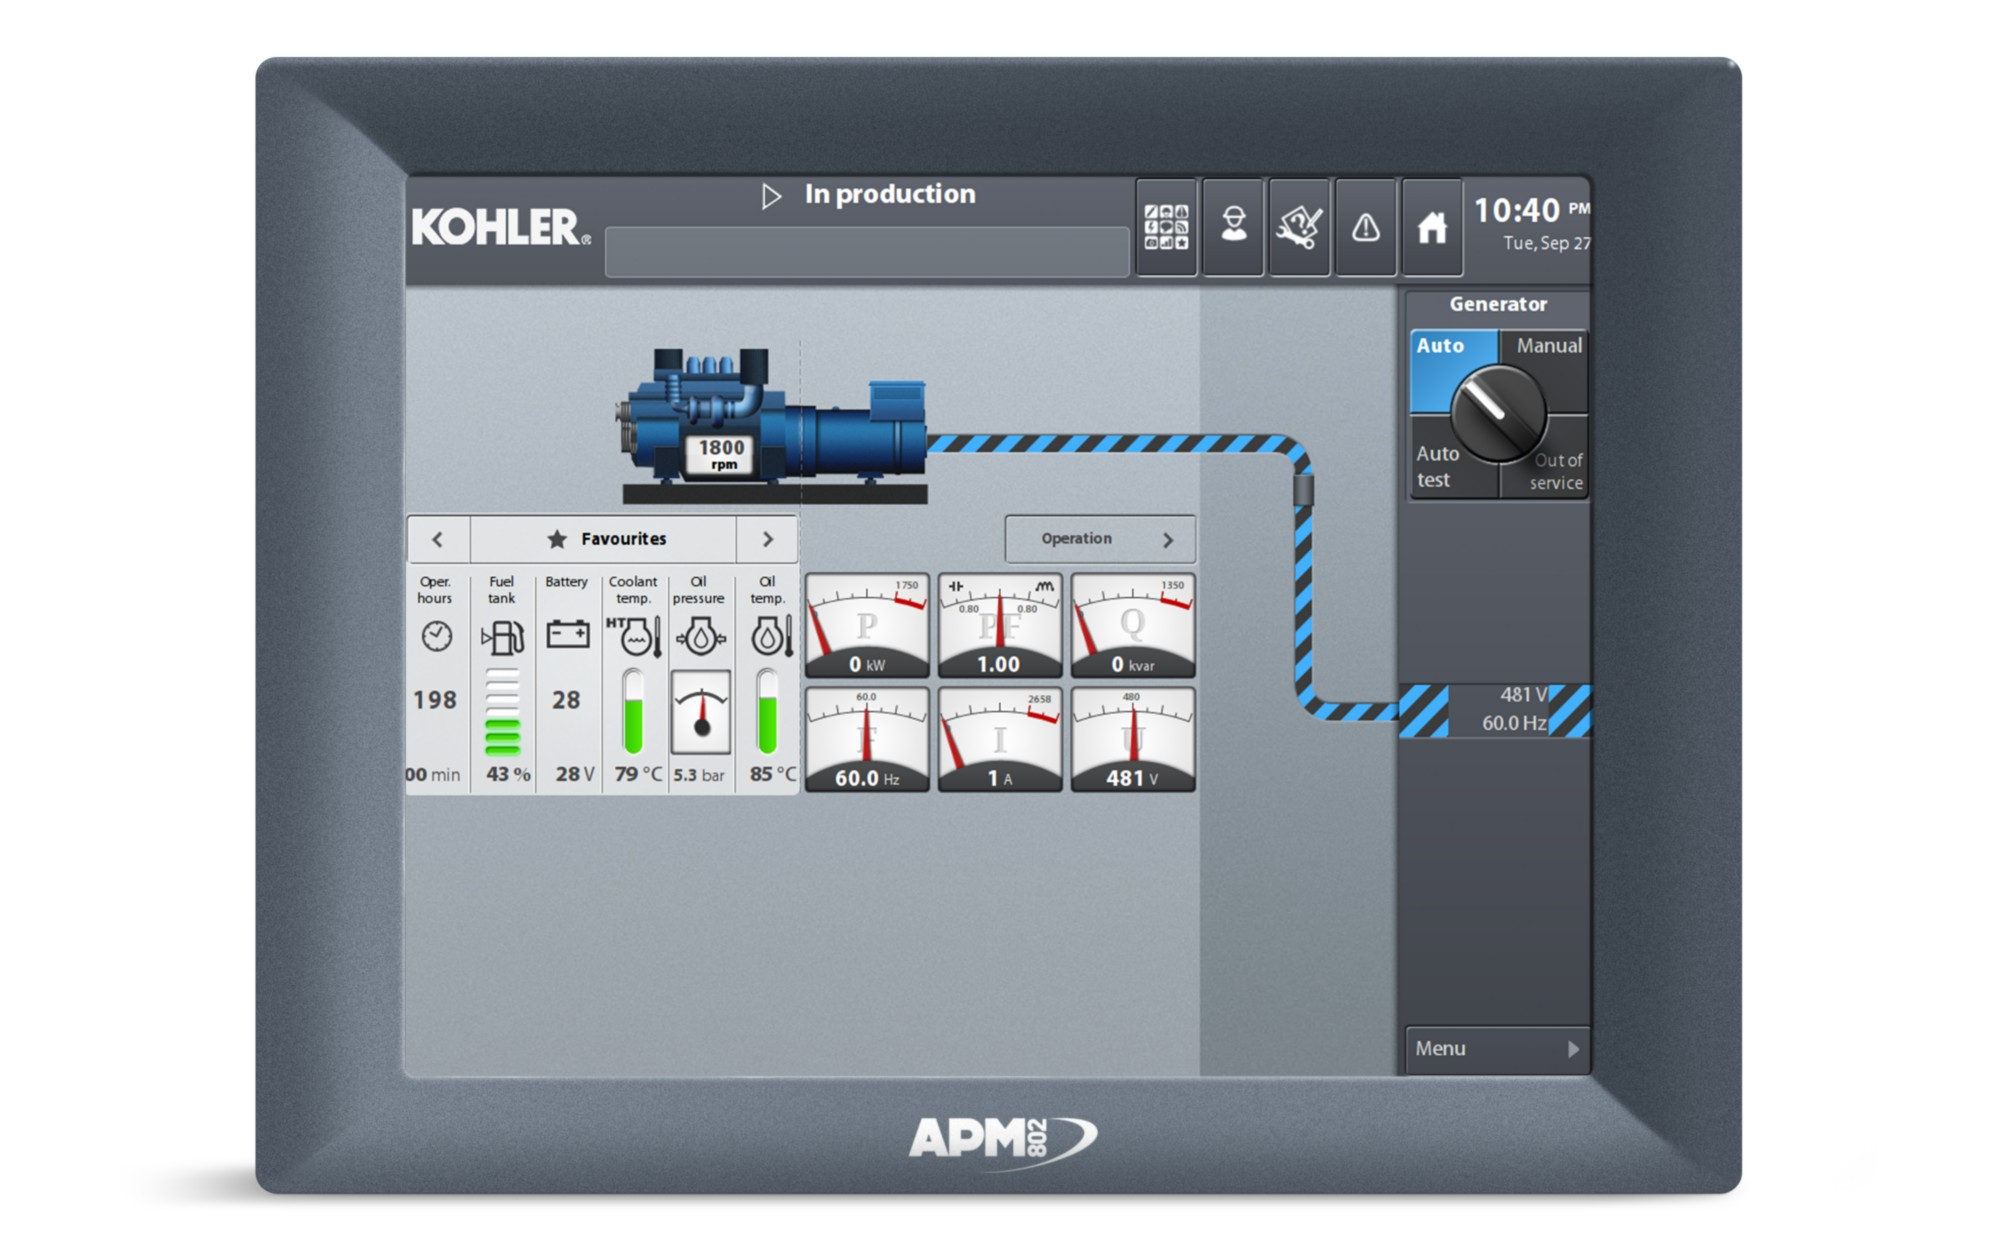 Apm802 Controls Kohler Sdmo Manual Transfer Switch Wiring Diagram